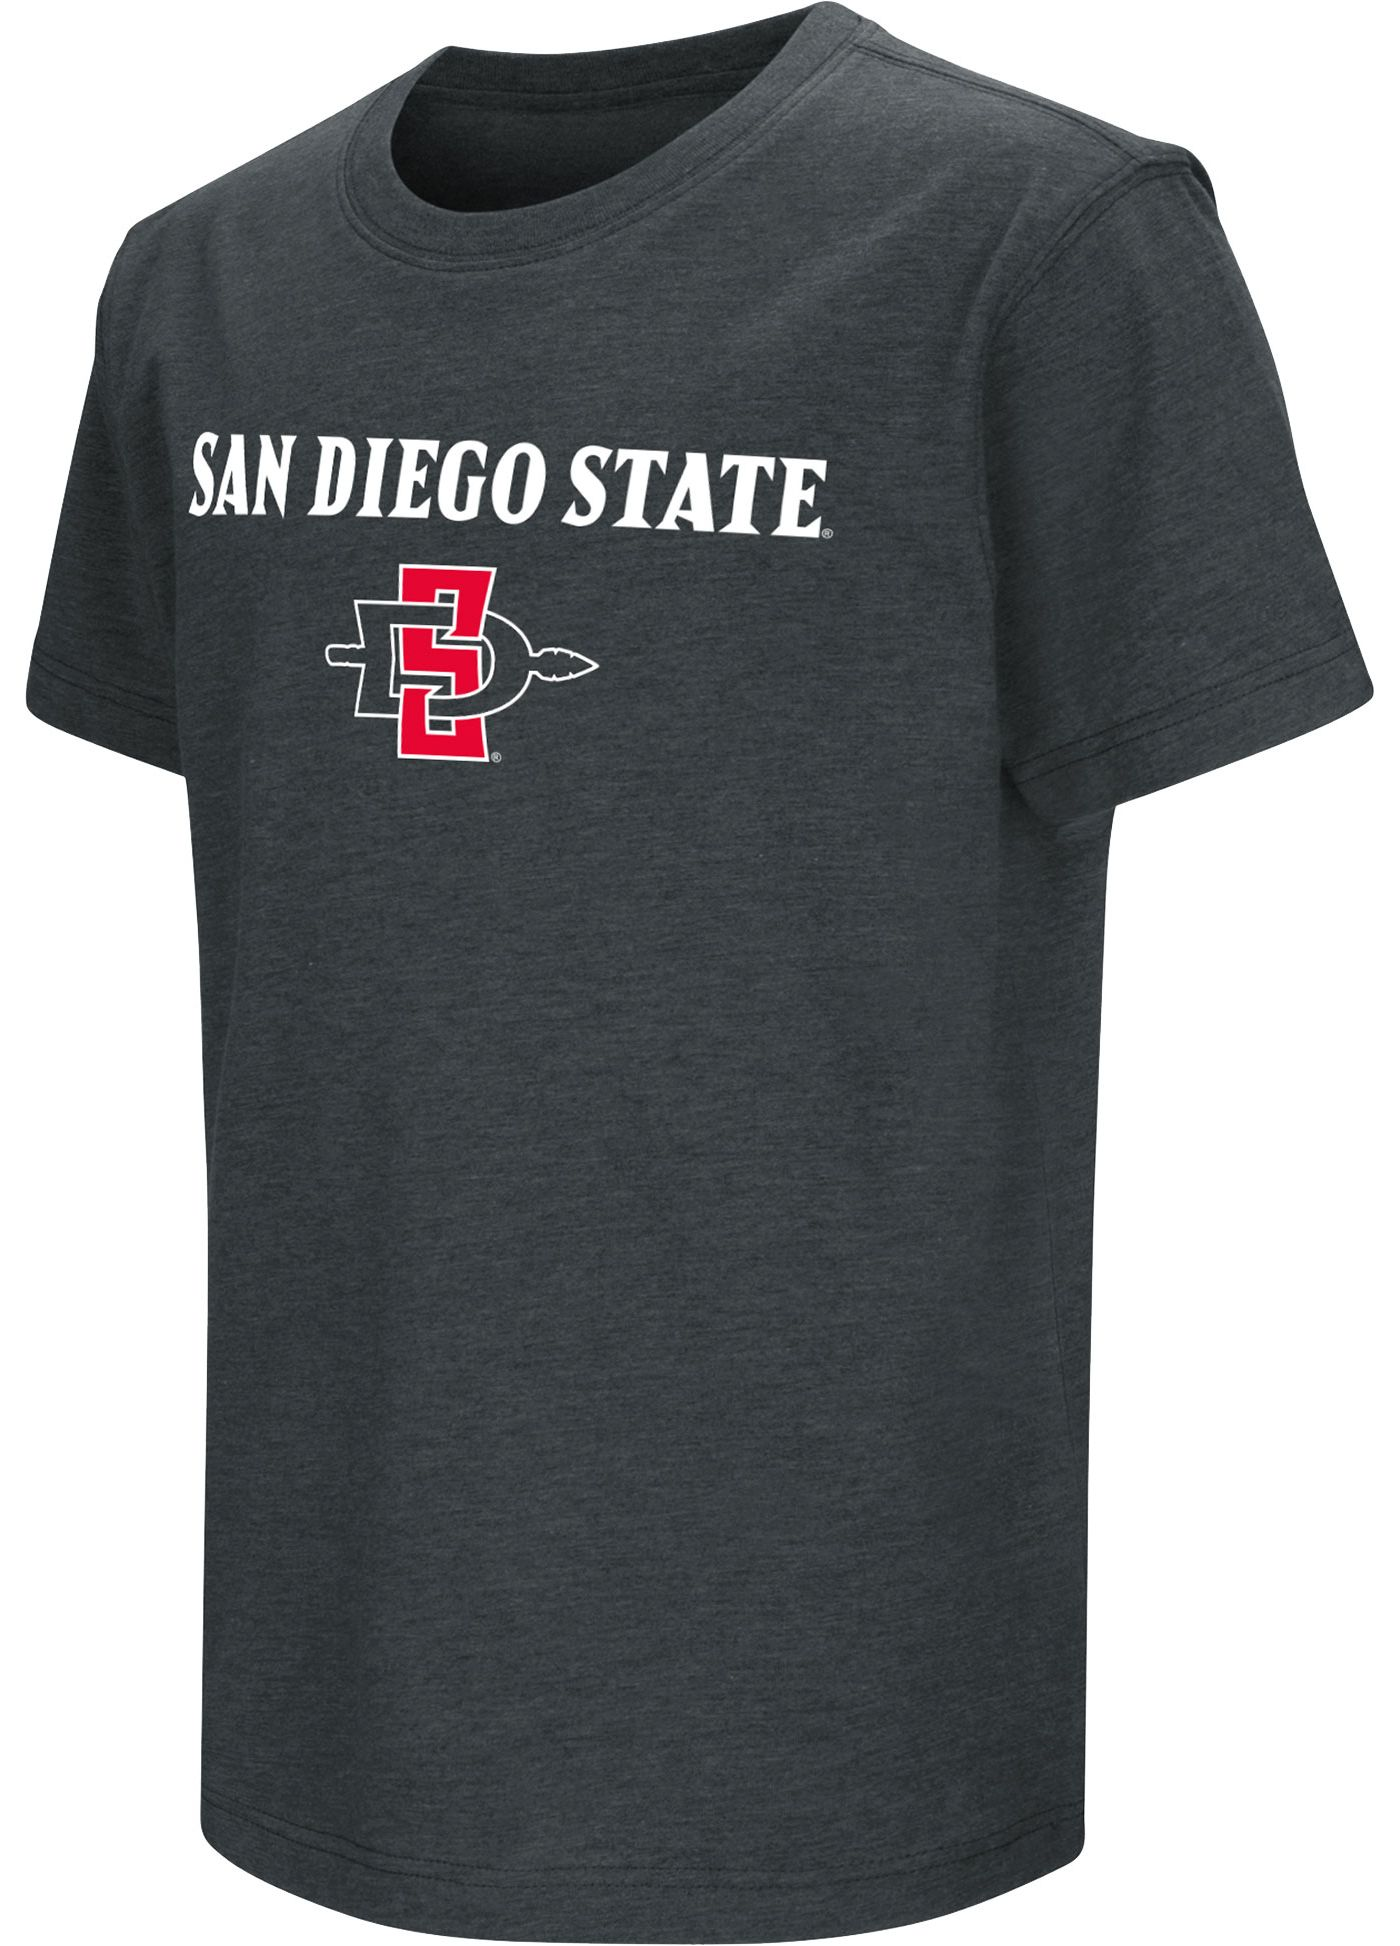 Colosseum Youth San Diego State Aztecs Dual Blend Black T-Shirt